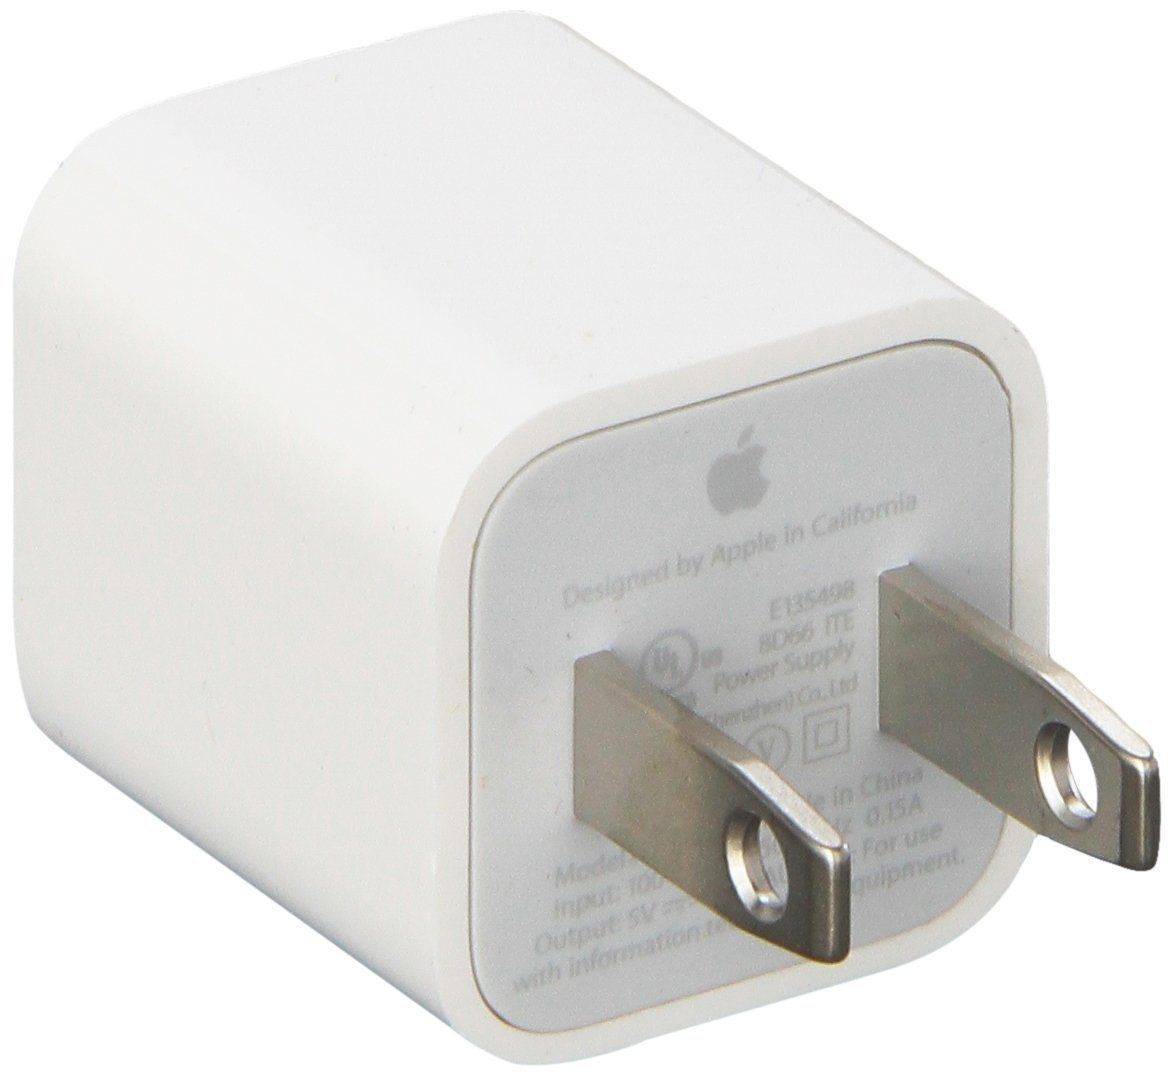 New 2 PCS USB Wall Charger Adapter Cube A1385 for Apple